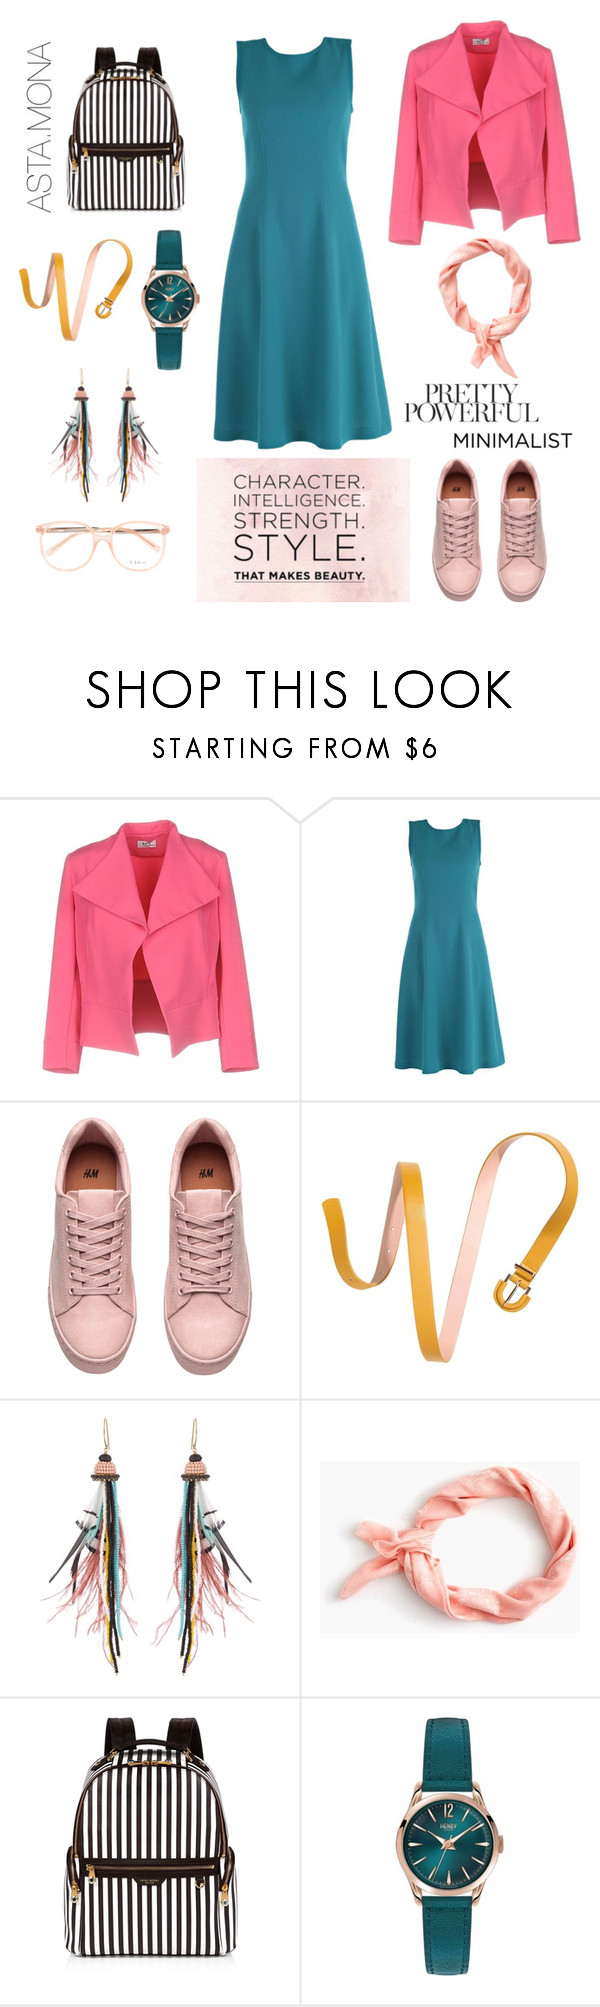 """""""Pretty Powerful Minimalist"""" by astamona74 ❤ liked on Polyvore featuring Laltramoda, P.A.R.O.S.H., Etro, J.Crew, Henri Bendel, Henry London, Chloé, Spring and casual"""